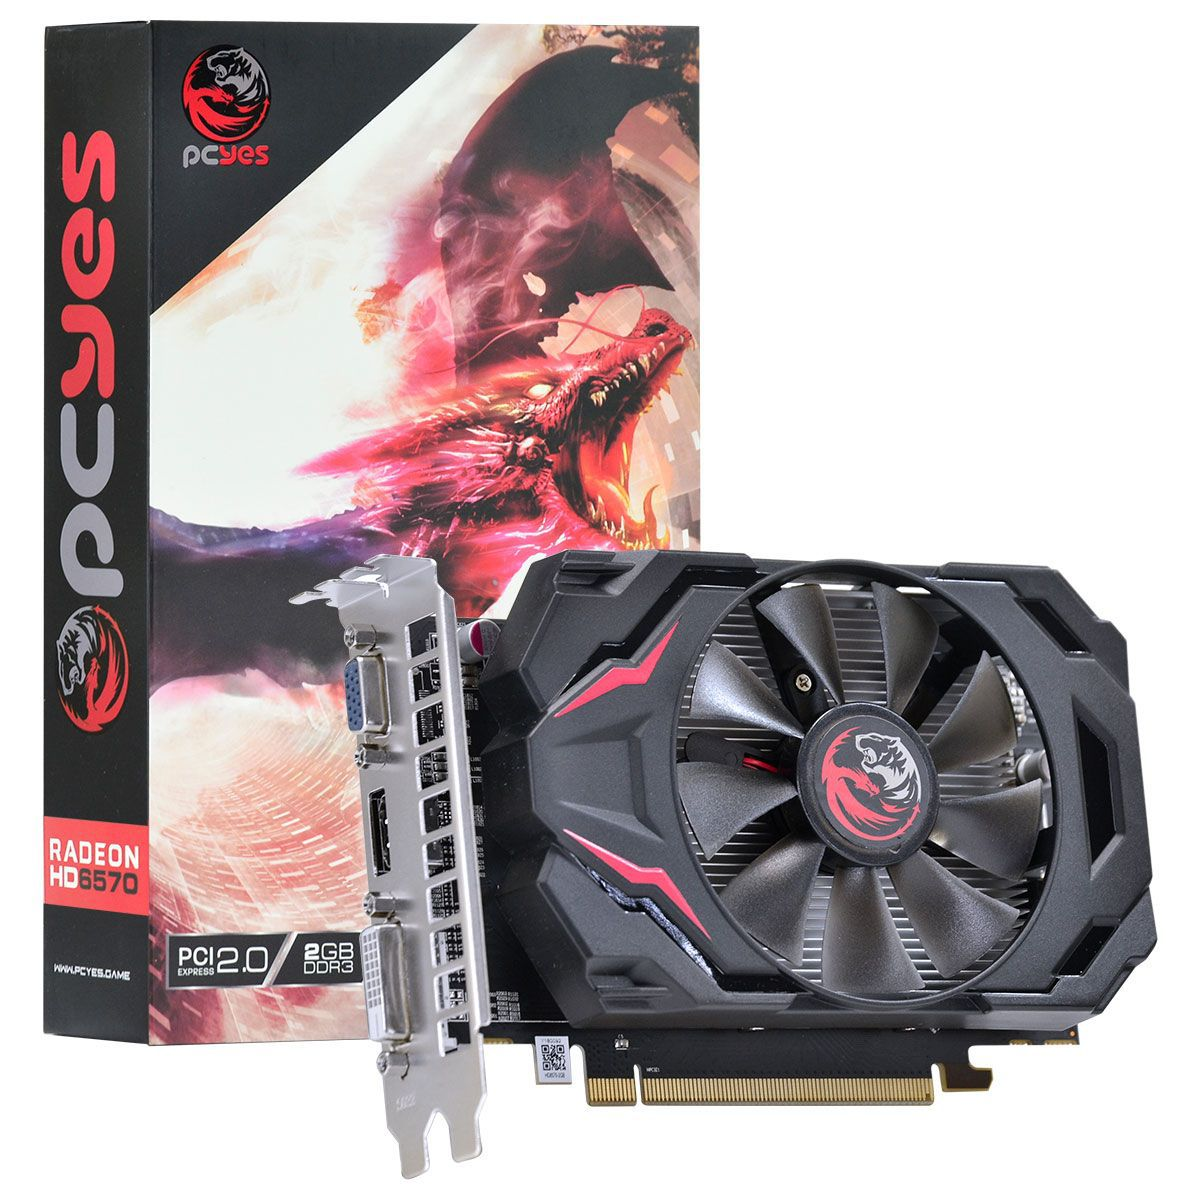 Placa de Vídeo AMD Radeon 6570 2GB DDR3 128 Bits PW657012802D3 - Pcyes